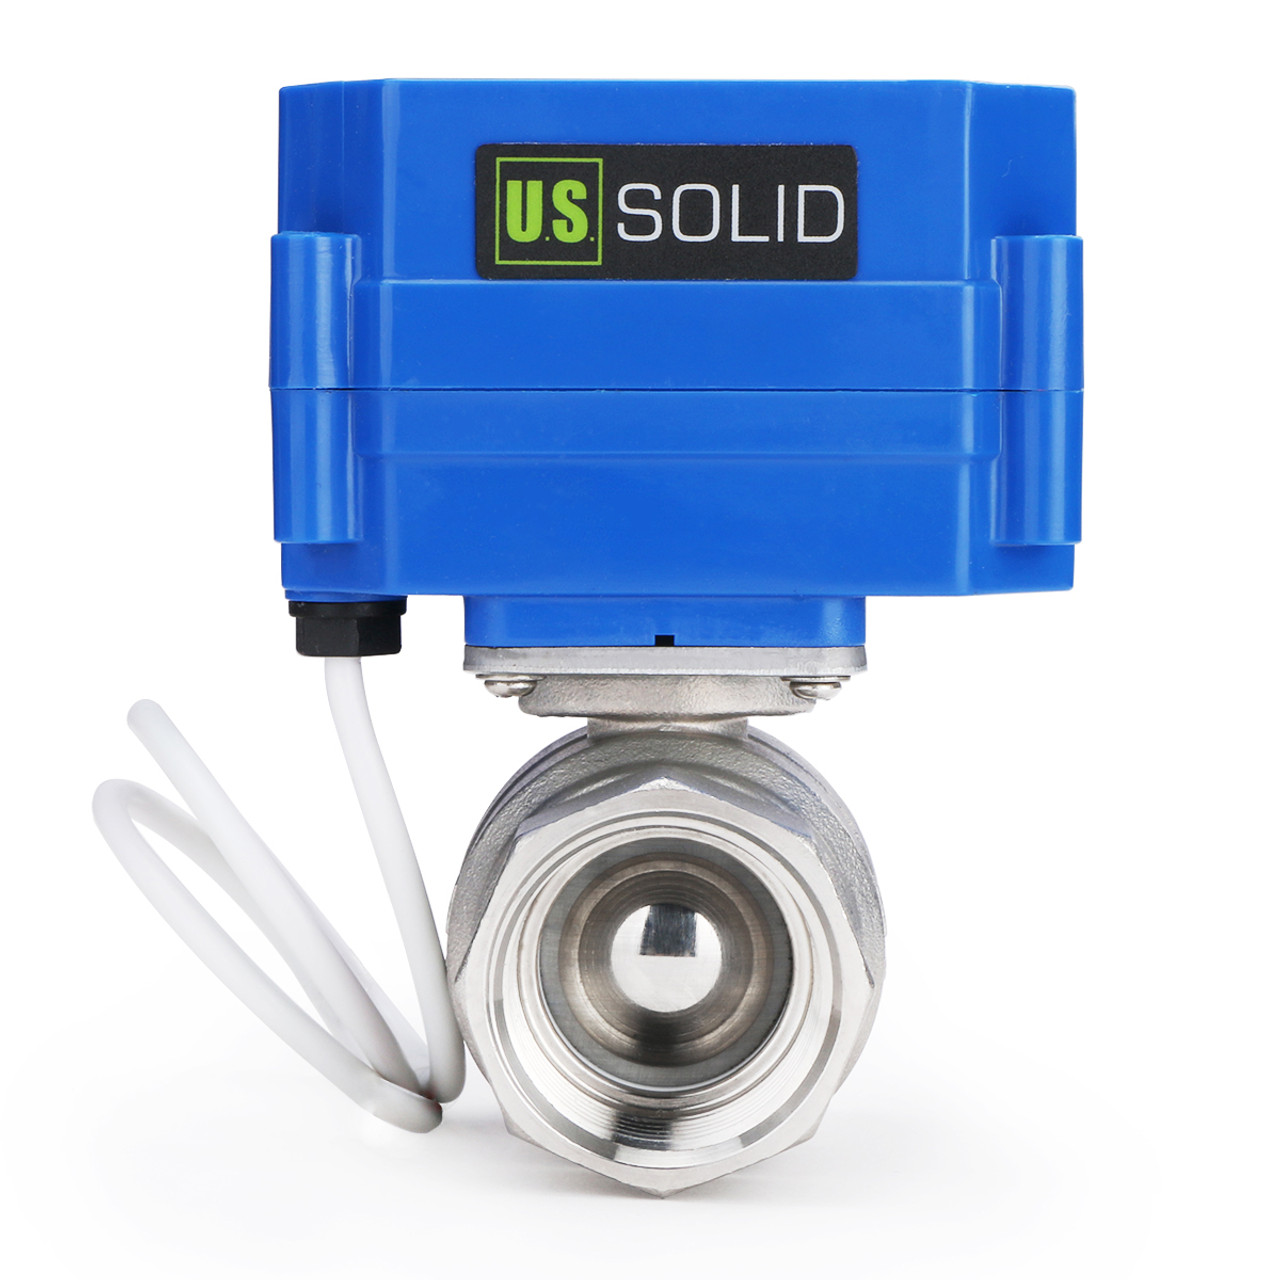 """U.S. Solid Motorized Ball Valve- 1"""" Stainless Steel Electrical Ball Valve with Full Port, 9-24 V DC, 5 Wire Setup"""